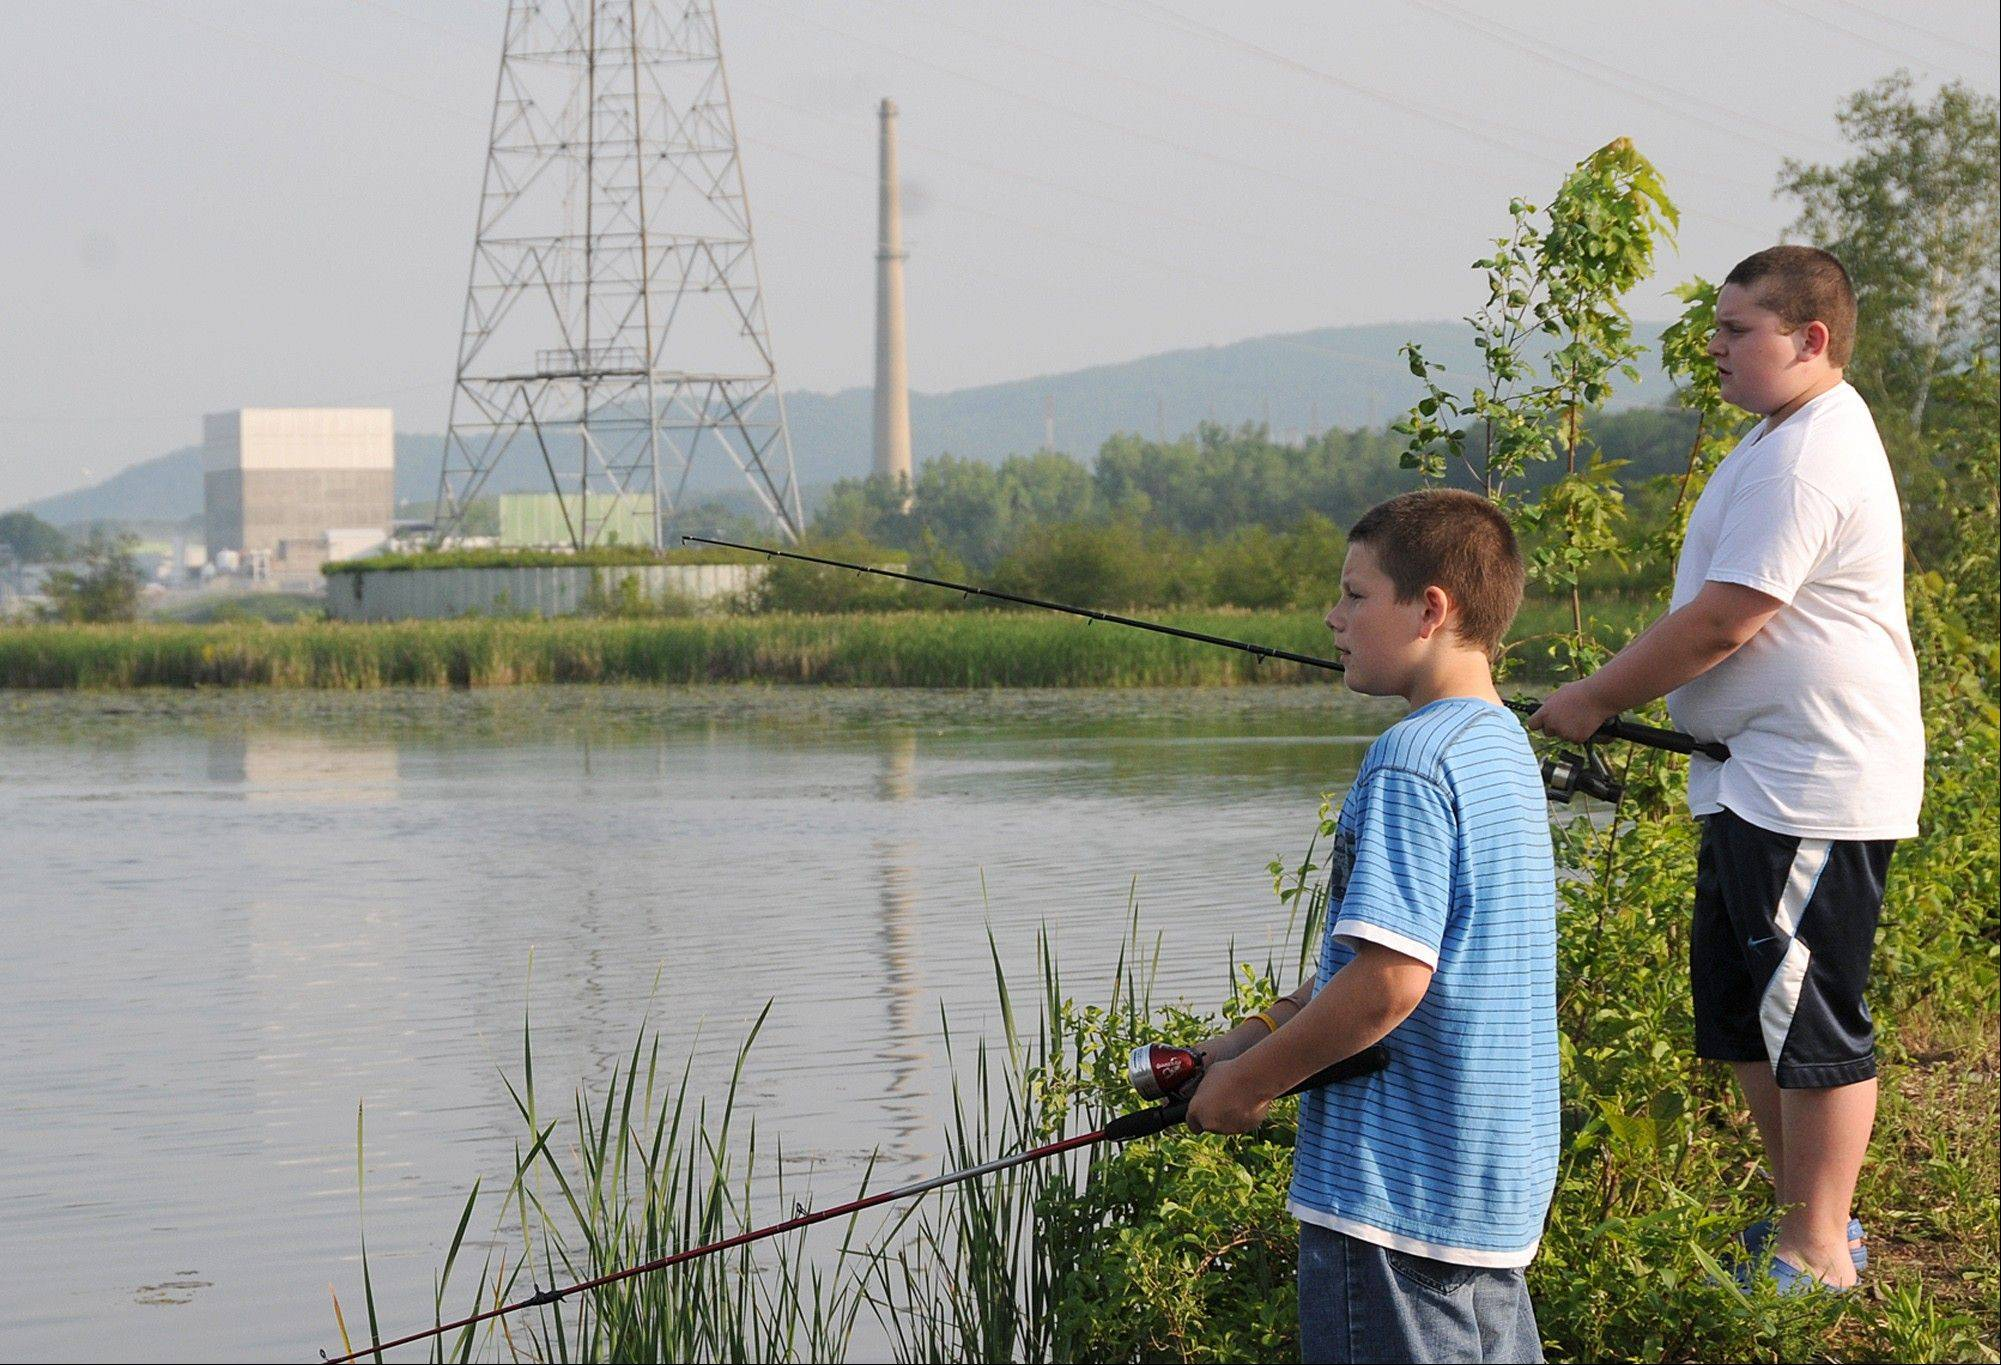 Two boys fish in the Connecticut River across from the Vermont Yankee nuclear power plant.